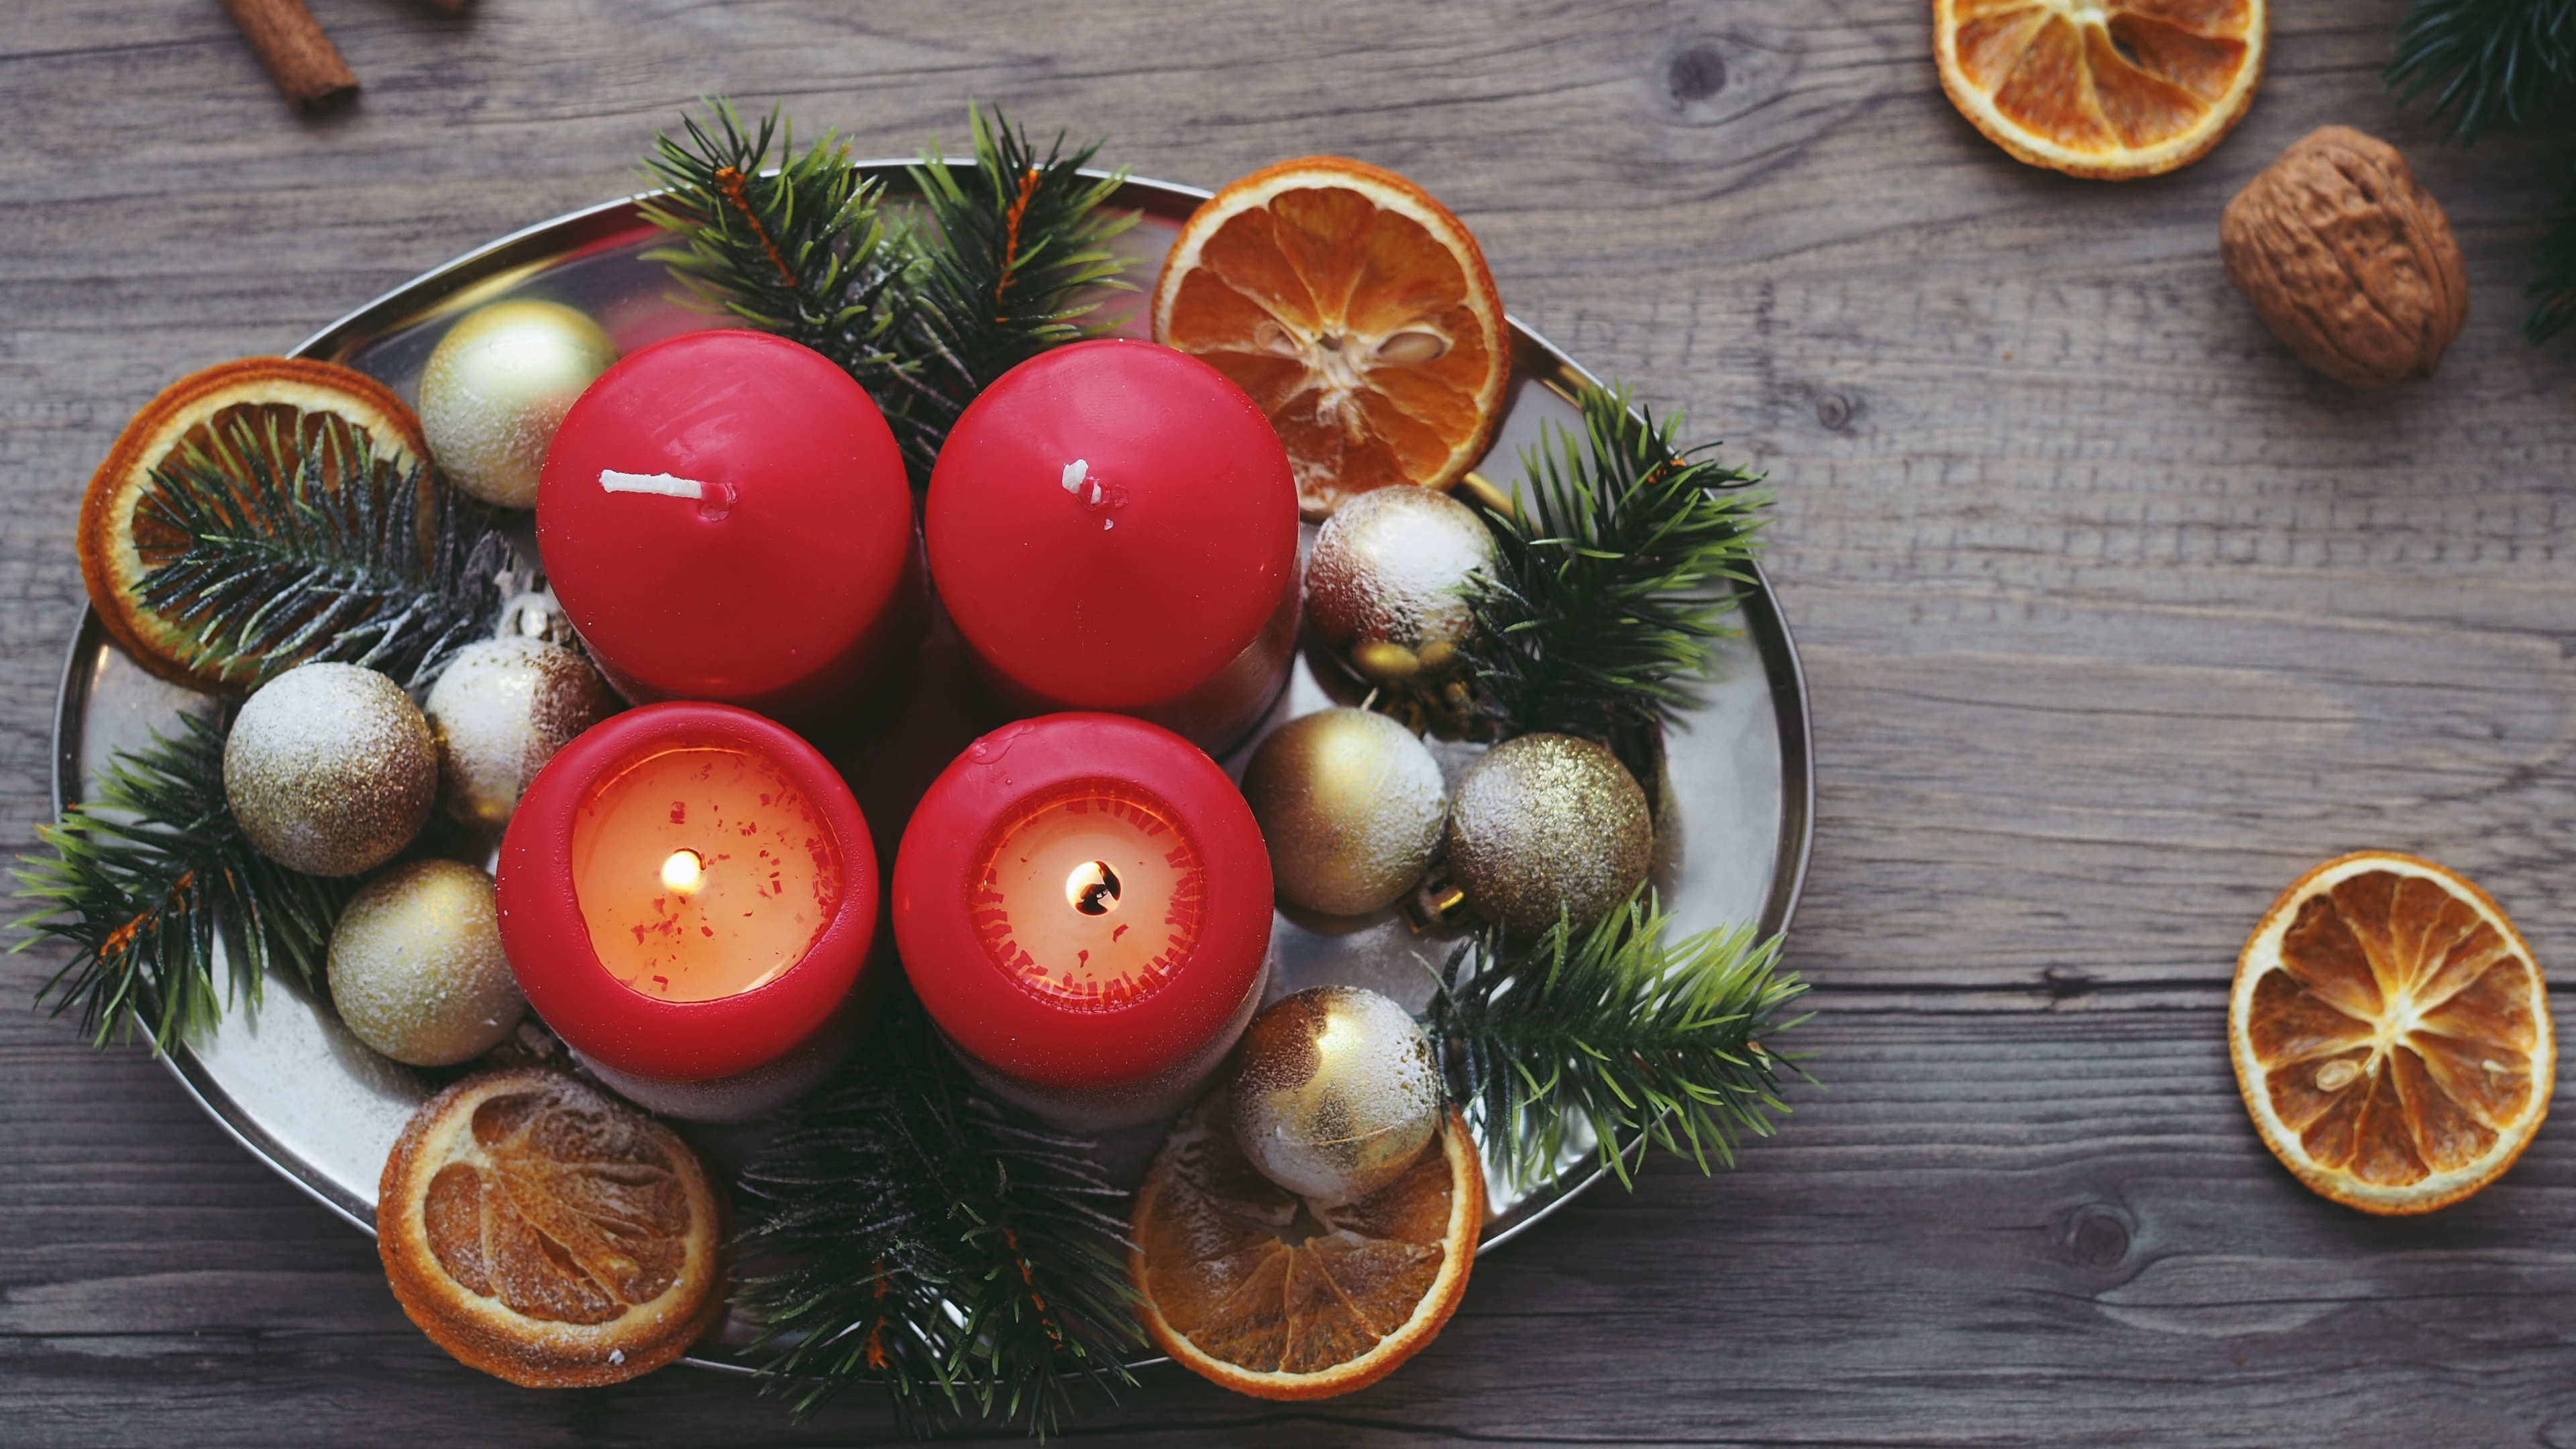 candles christmas spruce oranges 4k 1538344603 - candles, christmas, spruce, oranges 4k - spruce, Christmas, Candles